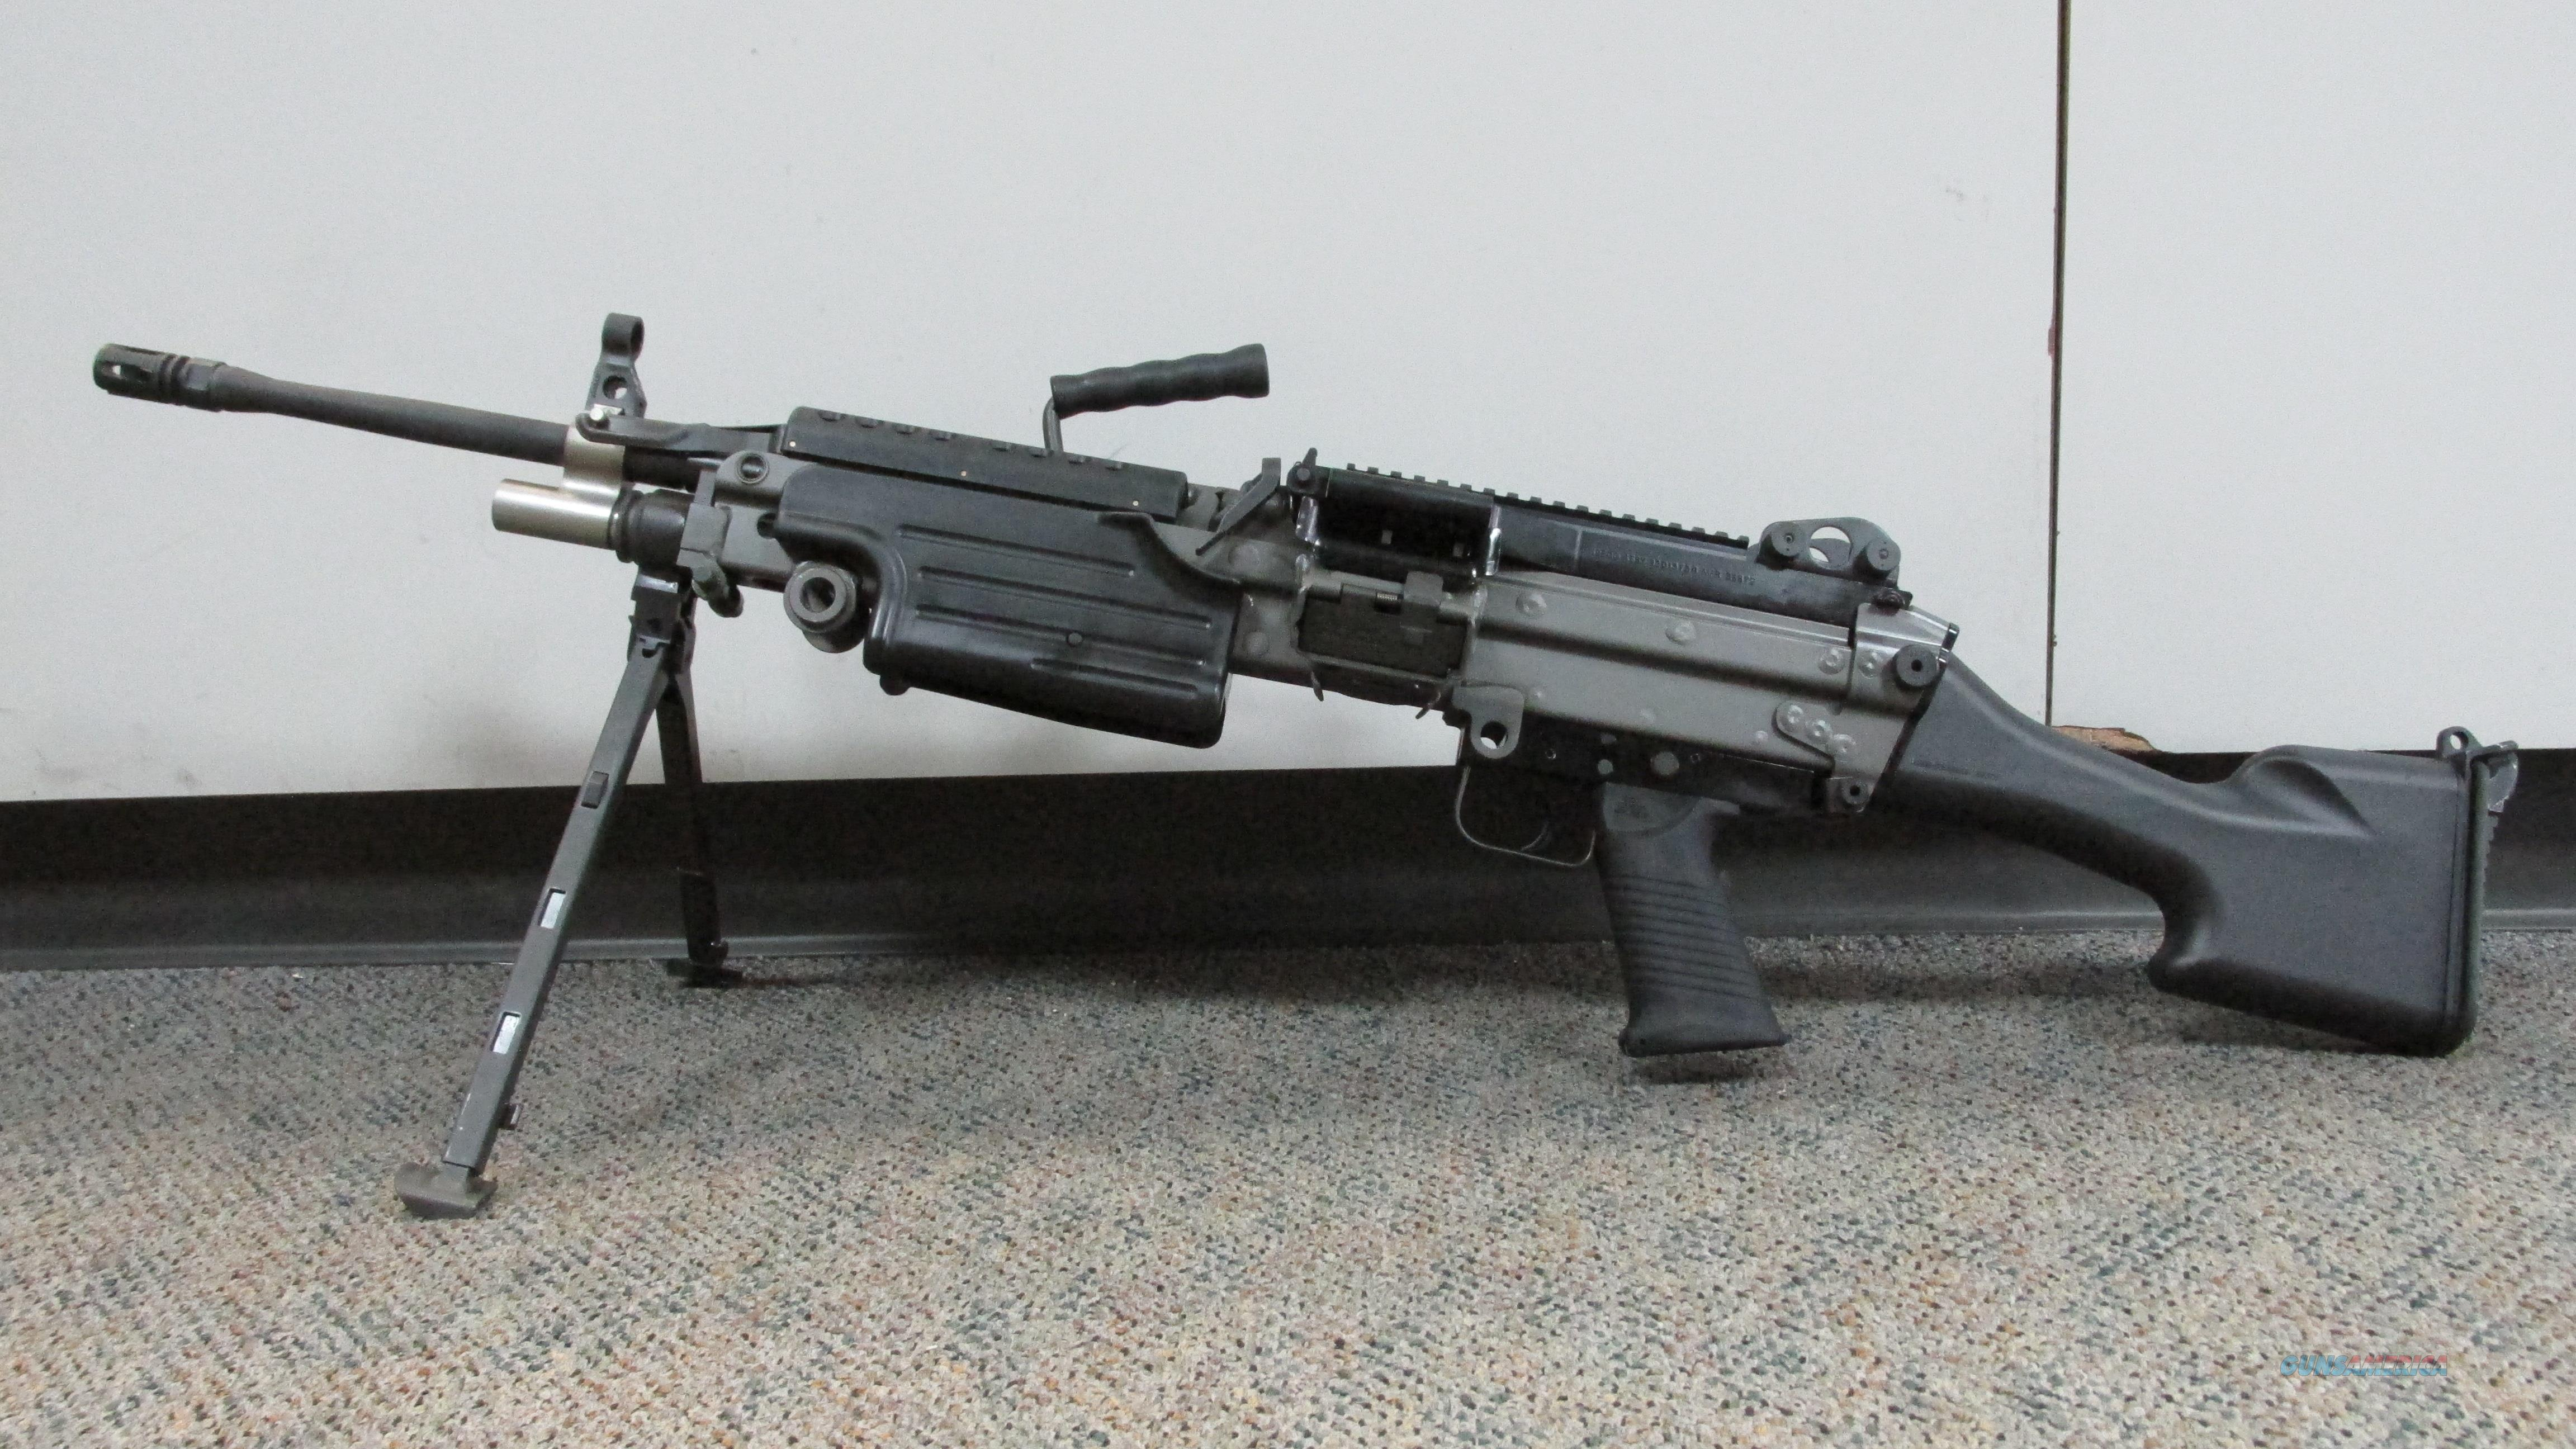 "FNH M249S SAW, 5.56 NATO RIFLE, 30 ROUND MAGAZINE, 200 ROUND DRUM, 20.5"" BARREL  Guns > Rifles > FNH - Fabrique Nationale (FN) Rifles > Semi-auto > Other"